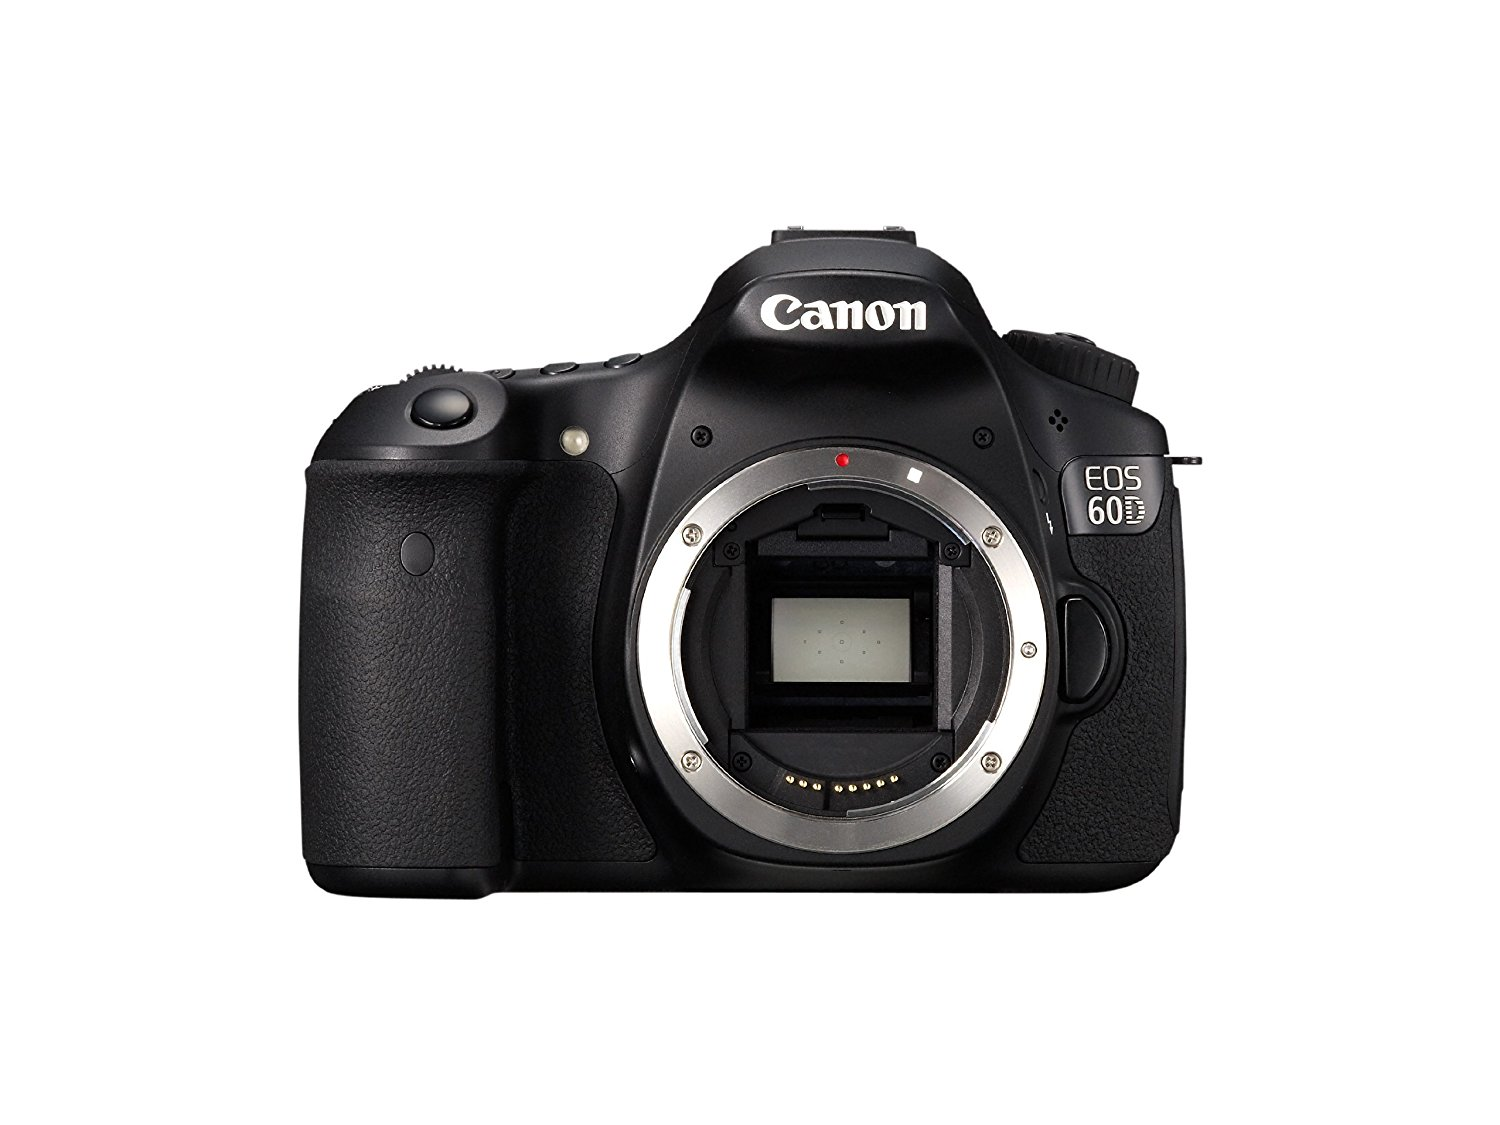 Canon EOS 60D - Cámara Réflex Digital 18 MP (Cuerpo) (Reacondicionado Certificado)